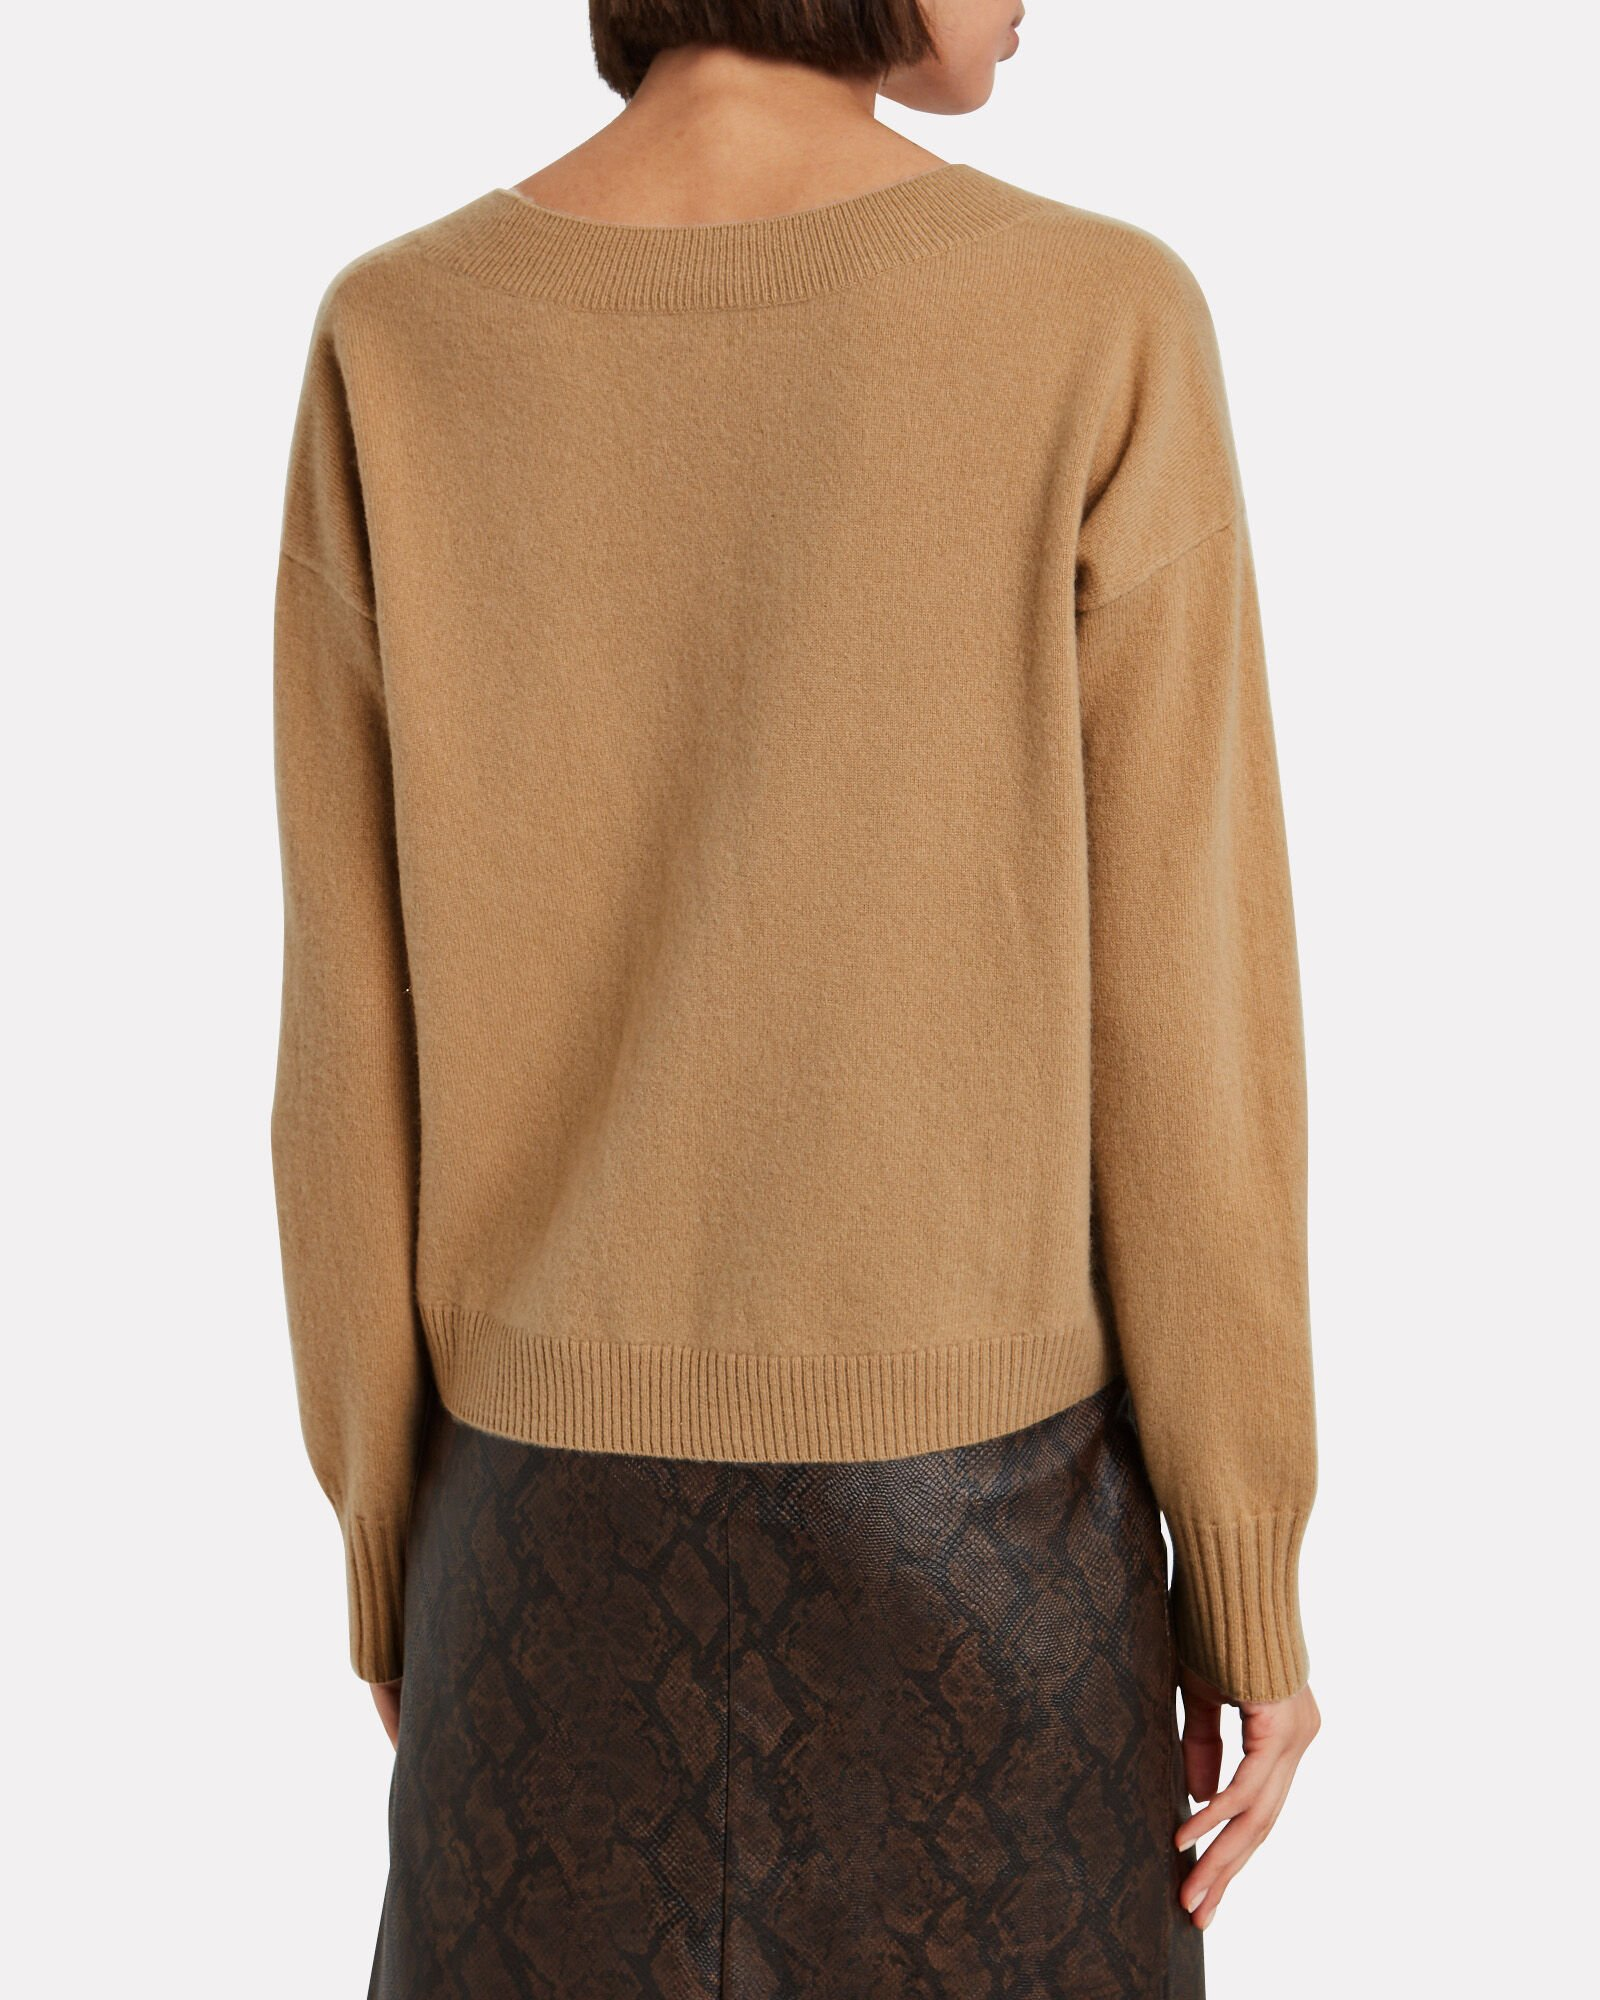 Elroy V-Neck Cashmere Sweater, BEIGE, hi-res